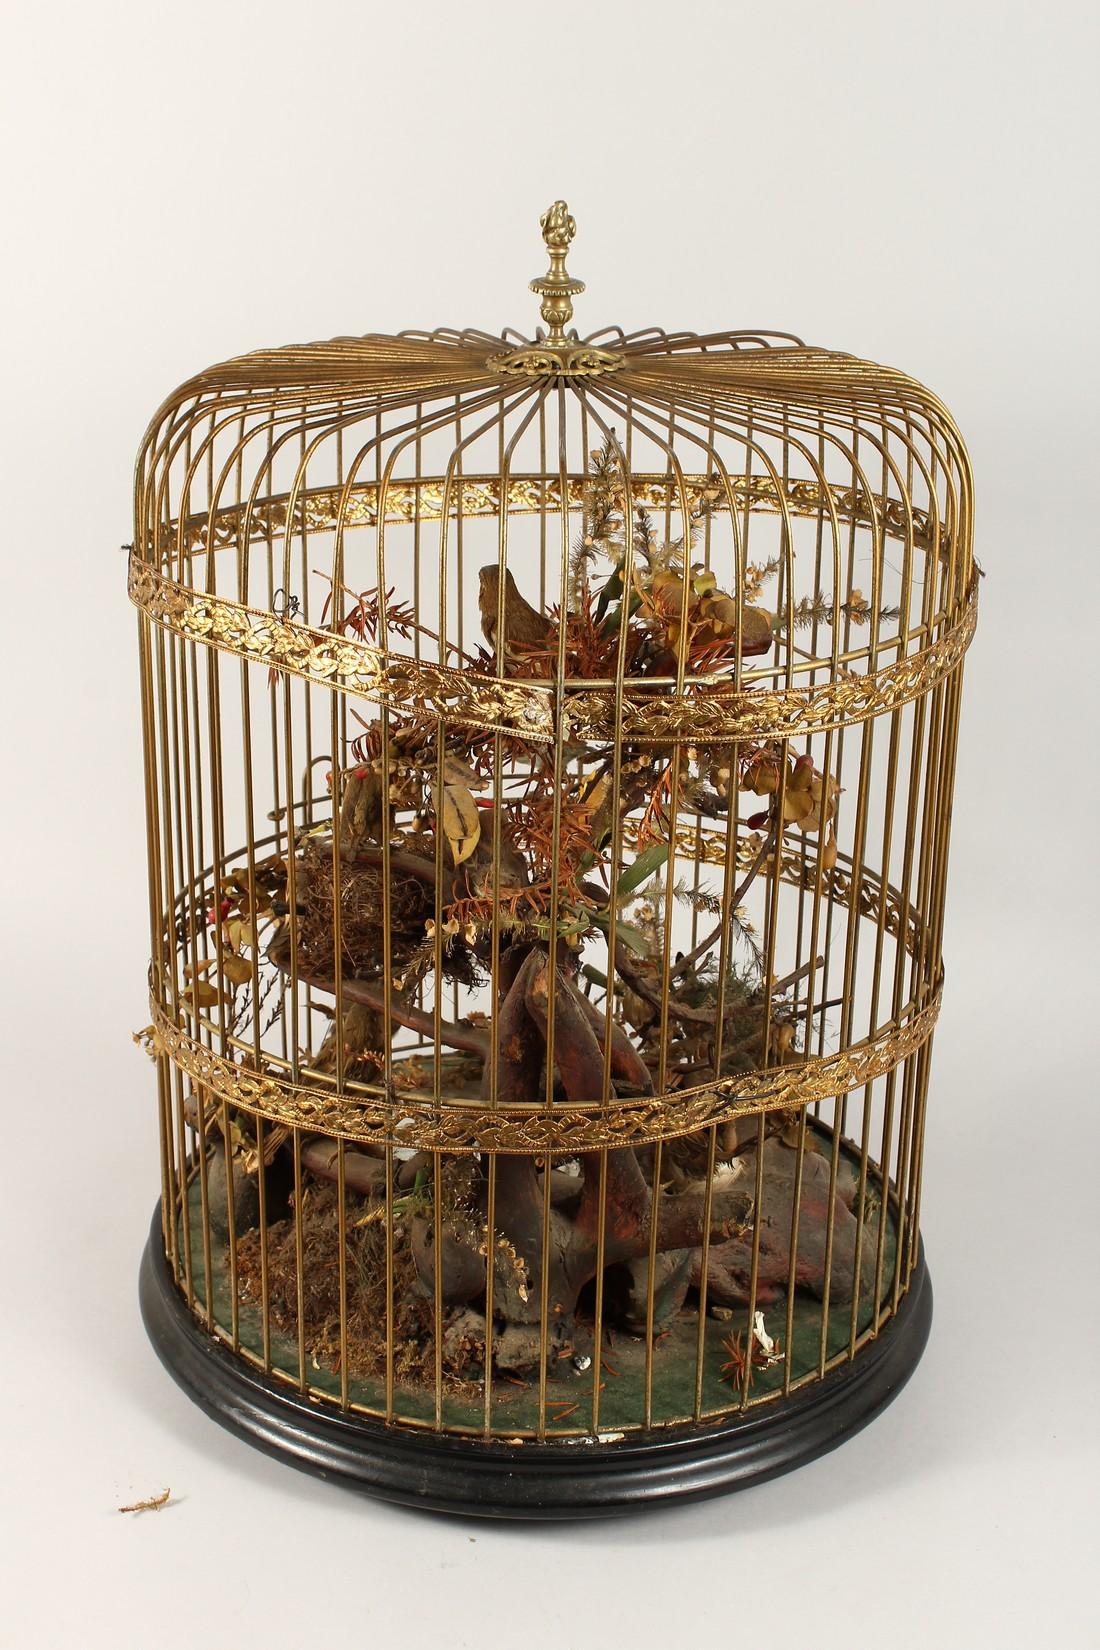 TAXIDERMY - VARIOUS SMALL BIRDS IN A METAL CAGE. Cage 23 ins tall - Image 6 of 6